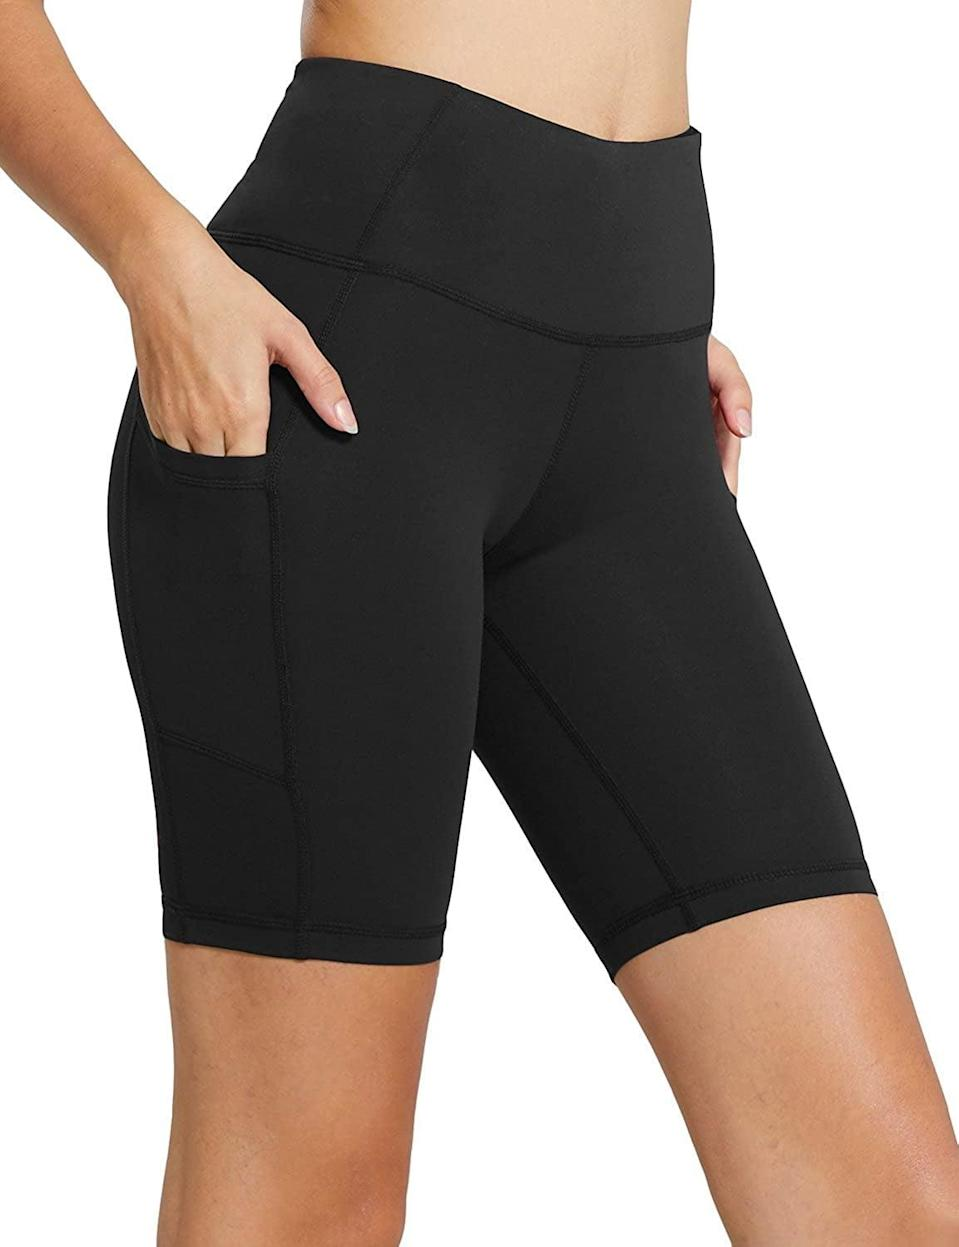 <p>These popular <span>Baleaf High Waist Workout Biker Compression Shorts</span> ($17-$39) are a customer favorite - they feature over 42,000 rave reviews.</p>